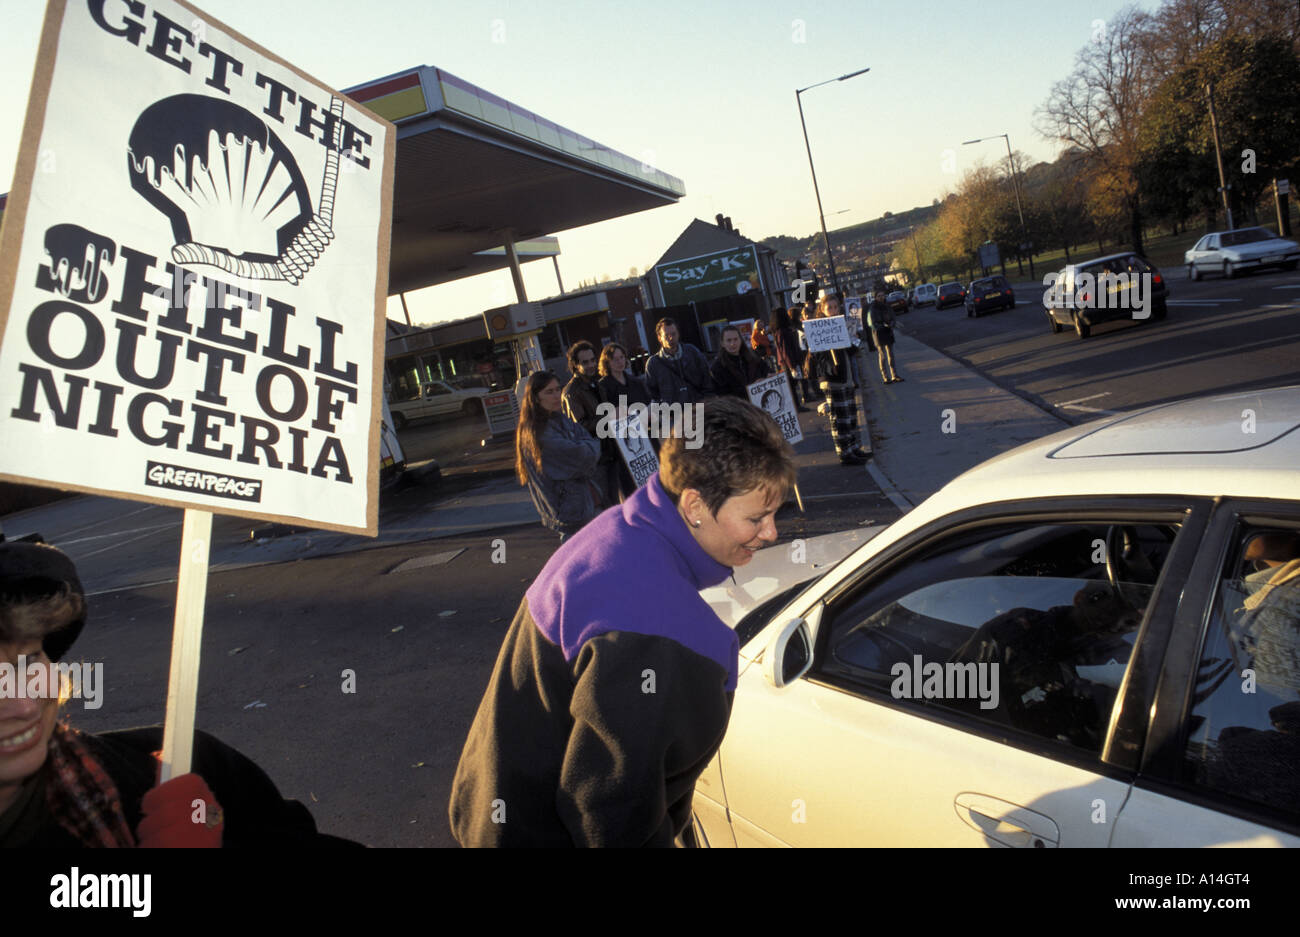 Protest outside a Shell garage in Bristol after the execution of Ken Sara Wiwa in Nigerea Demo in Bristol UK November 1995 - Stock Image